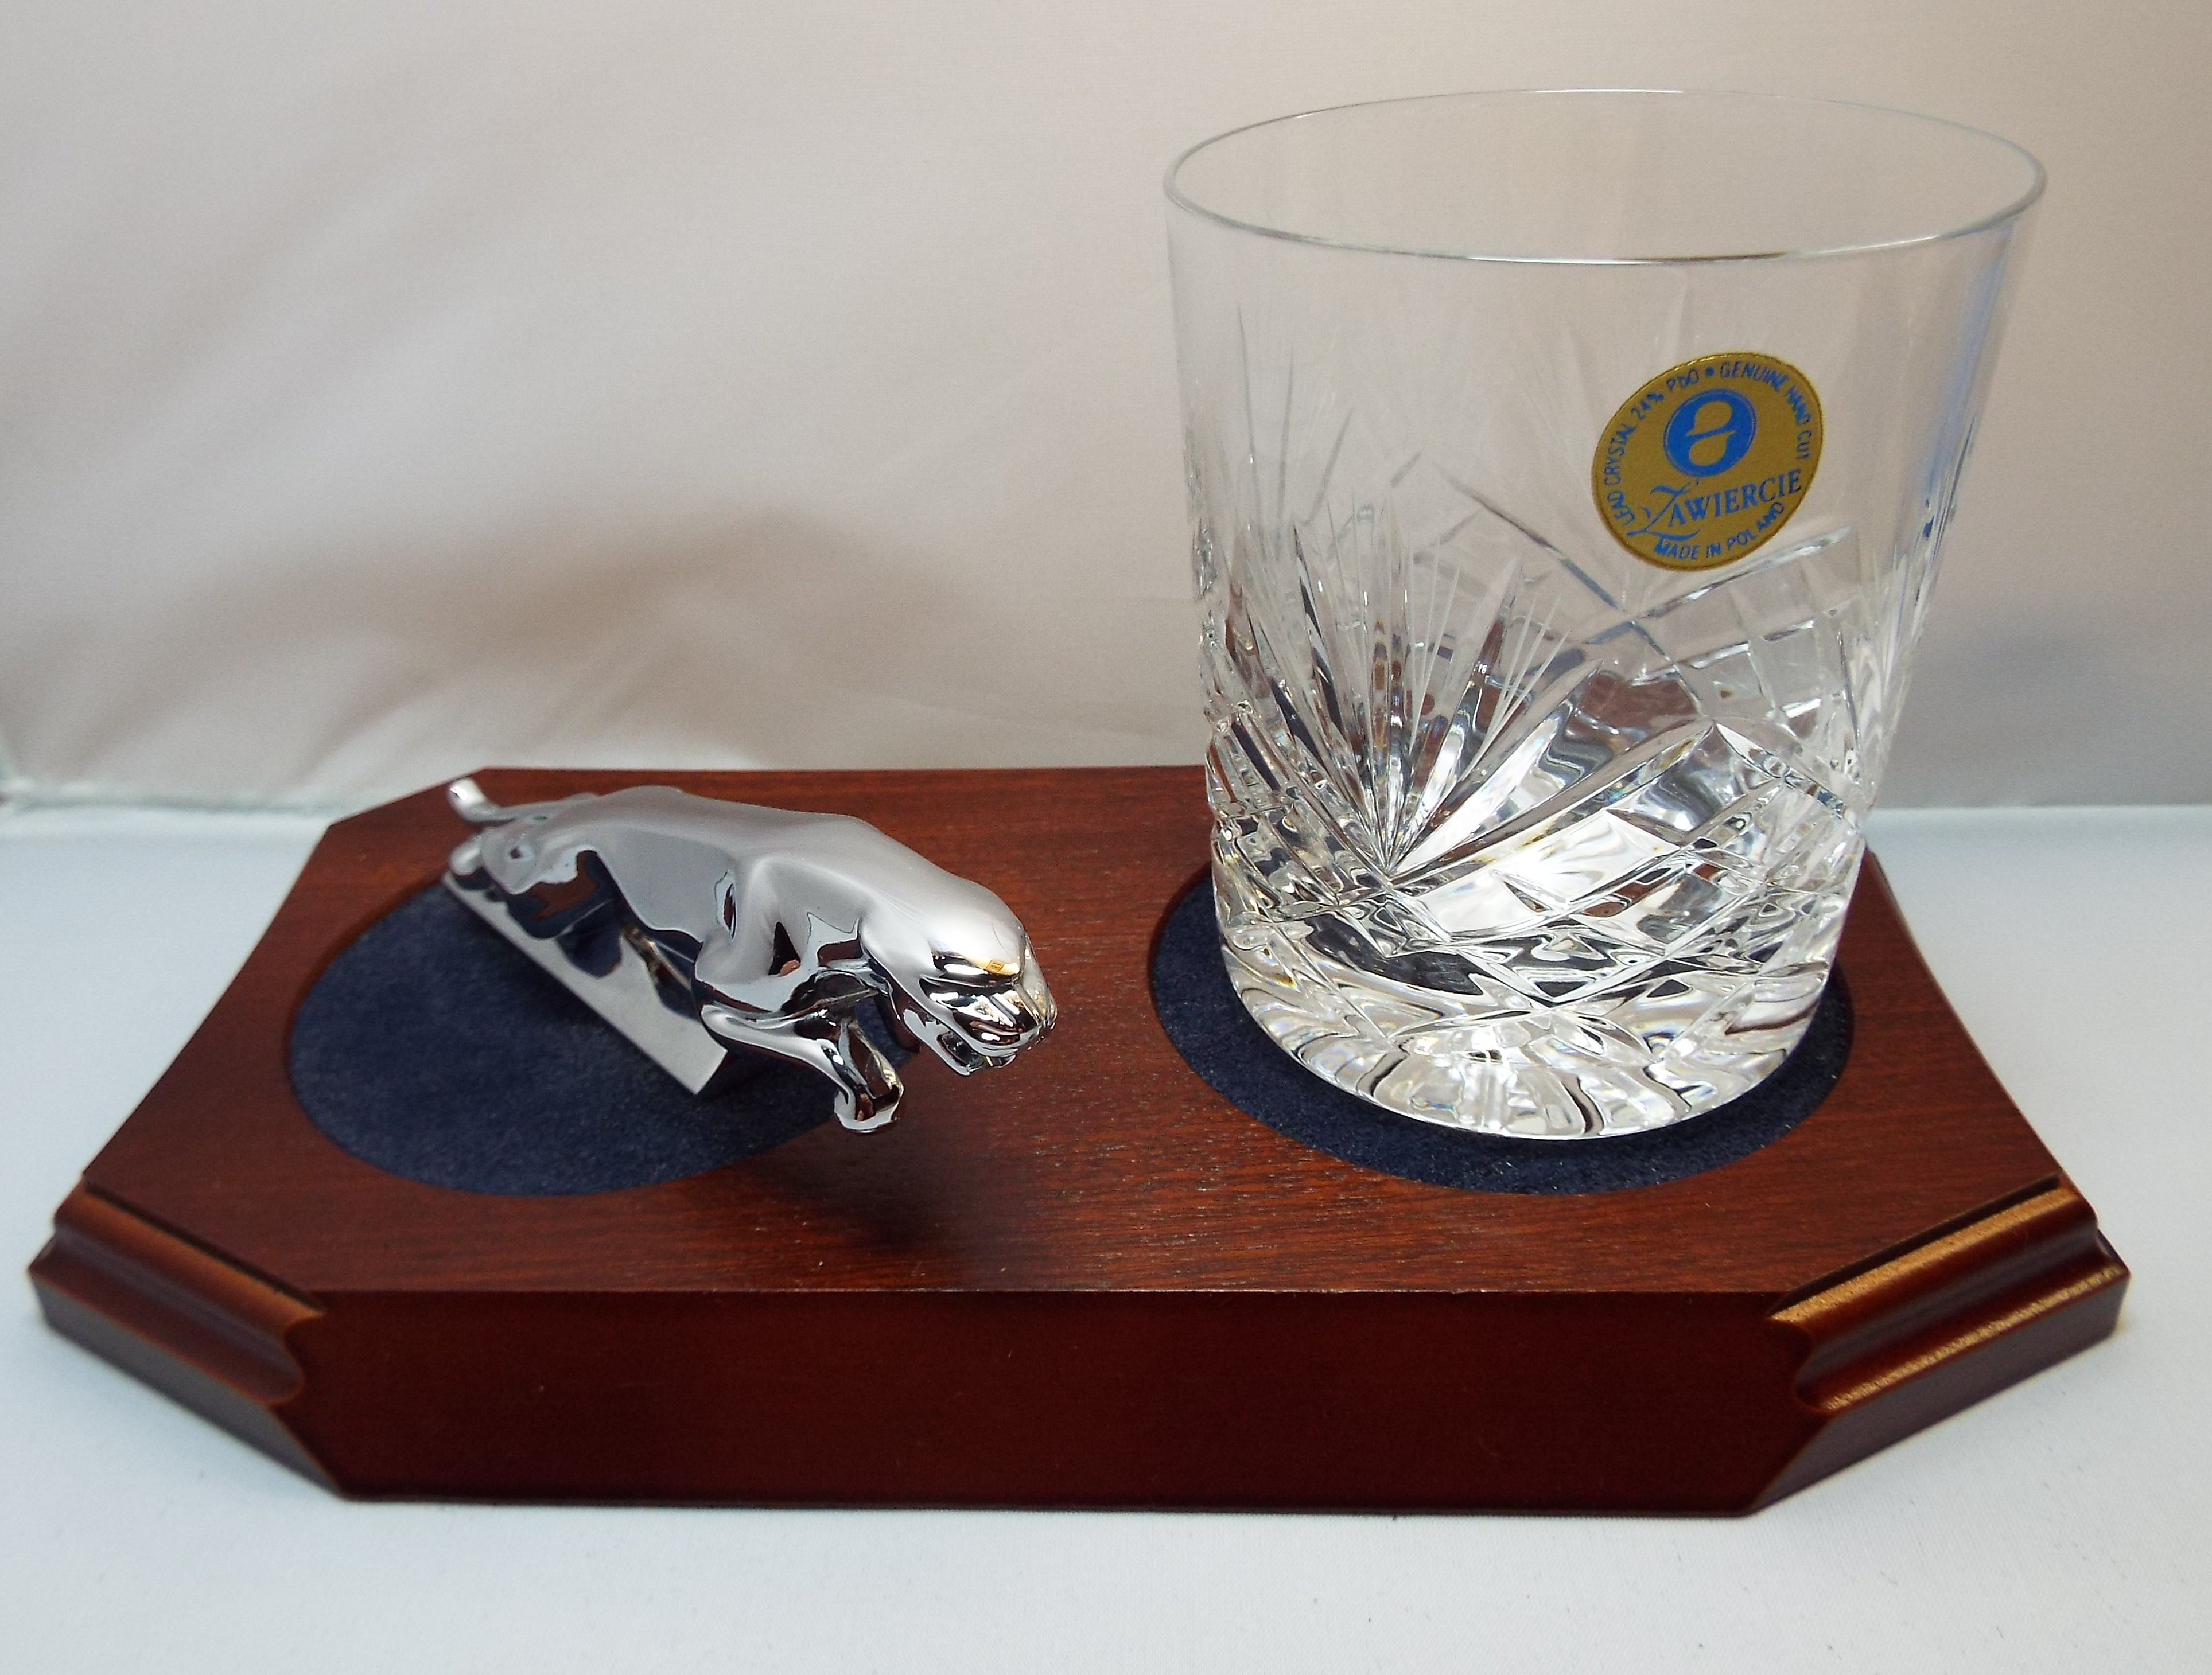 Small Chrome Plated Jaguar Mounted on a wood Plinth with One Lead Crystal Whisky Tumbler and Felt Coaster